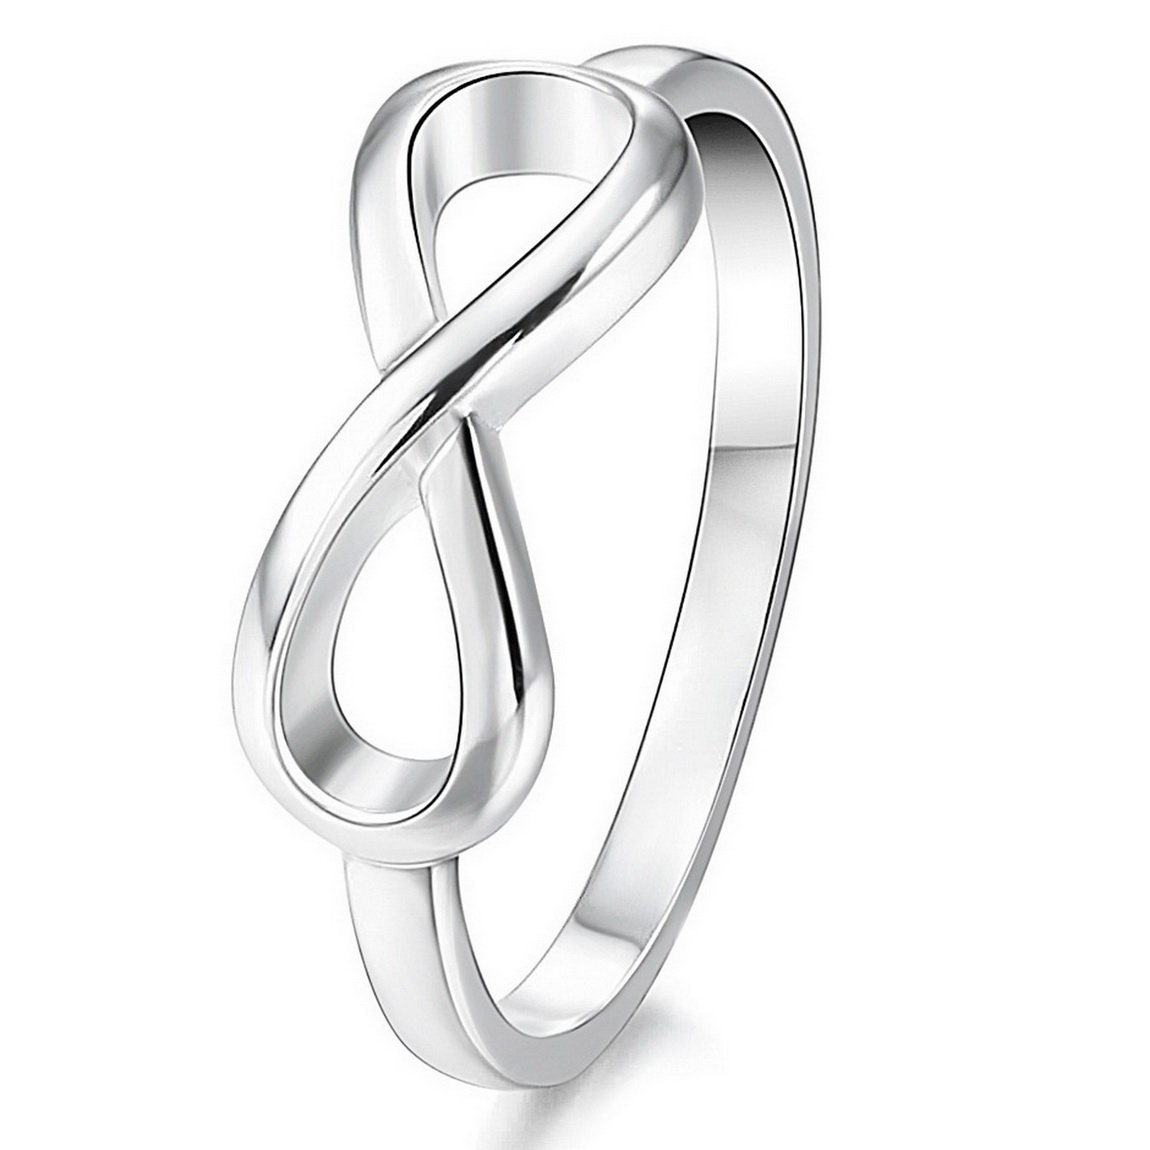 INBLUE Women's 925 Sterling Silver Band Ring Silver Tone Infinity Symbol Wedding INBLUE Jewelry mne540-parent